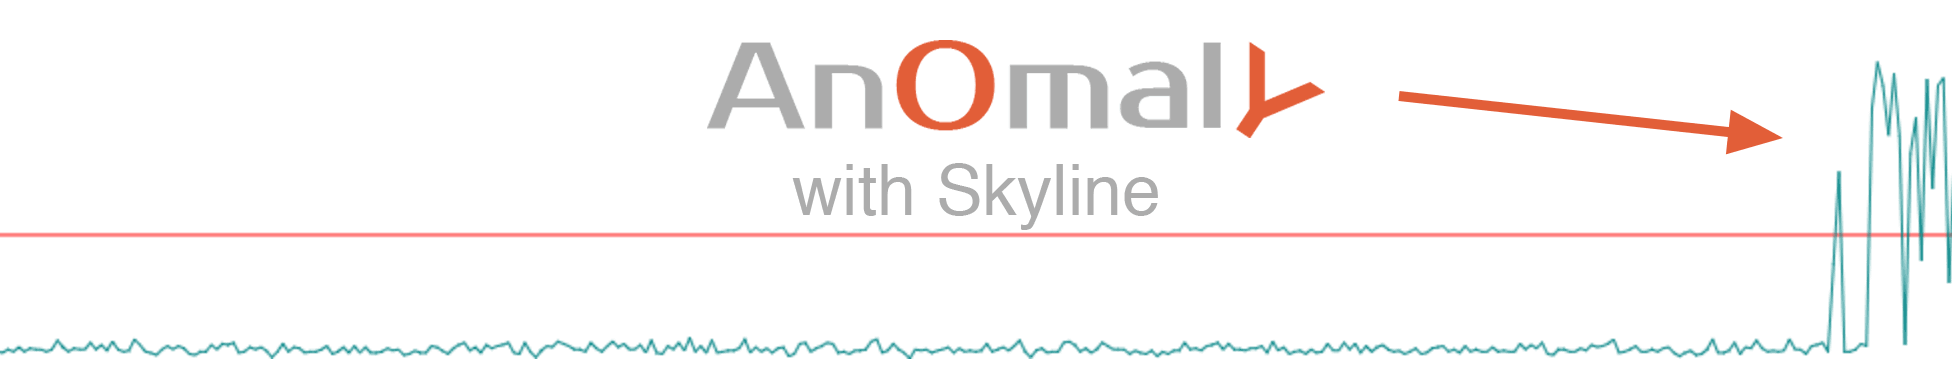 install skyline anomaly detection